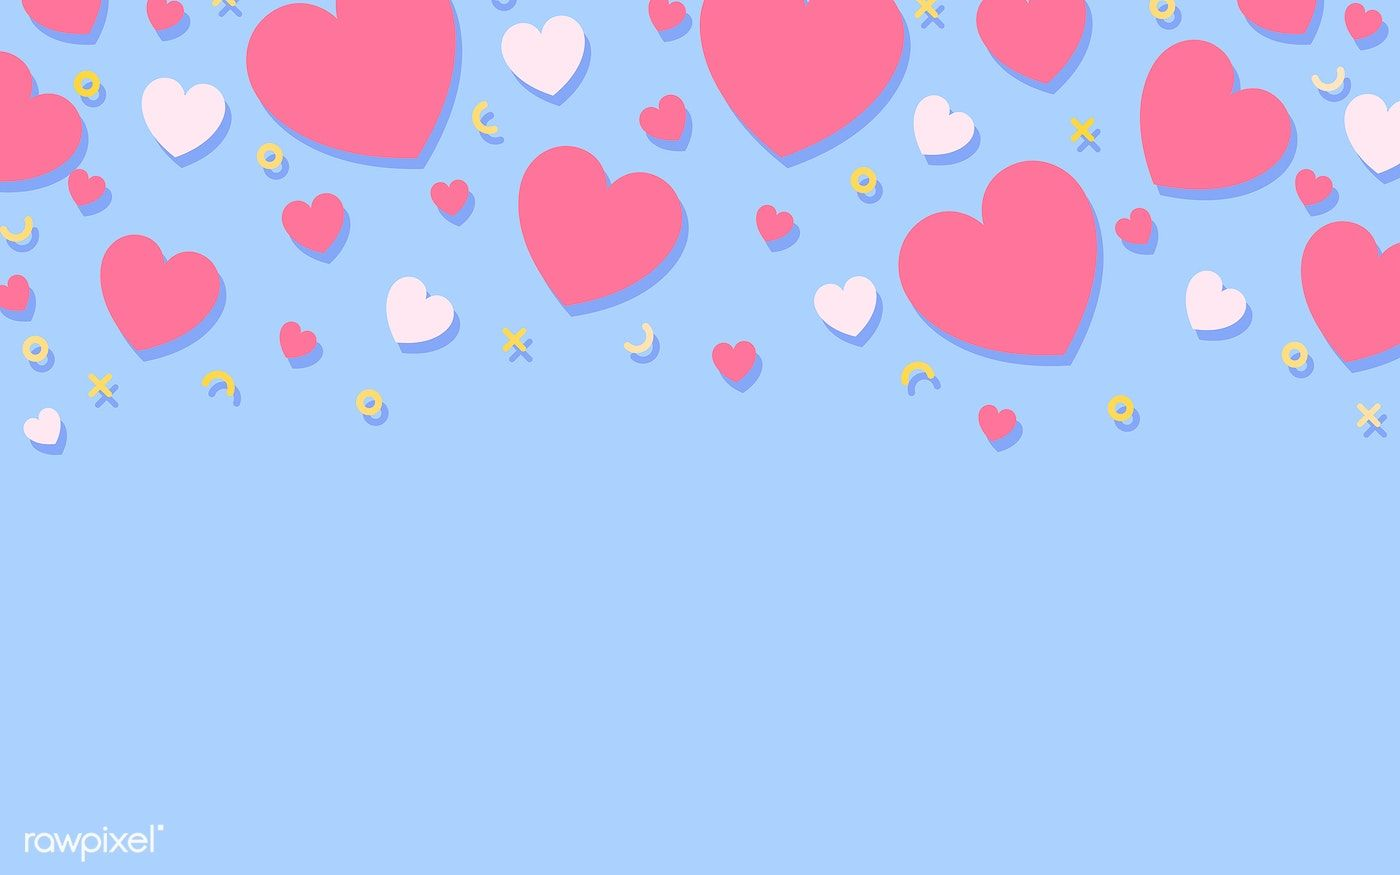 Pastel Hearts Background Design Vector Free Image By Rawpixel Com Kappy Kappy Background Design Background Design Vector Heart Background